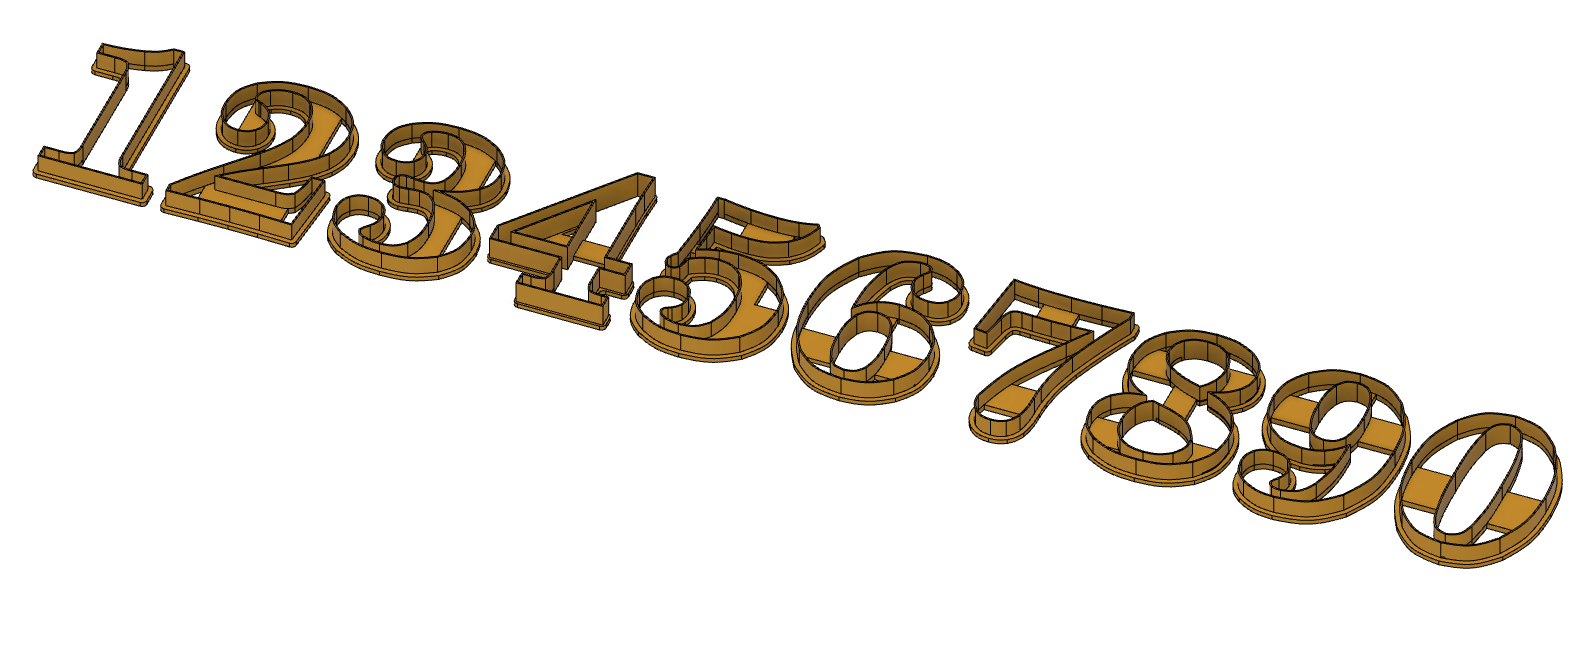 Numbers2.png Download STL file Numbers Cookie Cuters • 3D printable design, drsmyrke